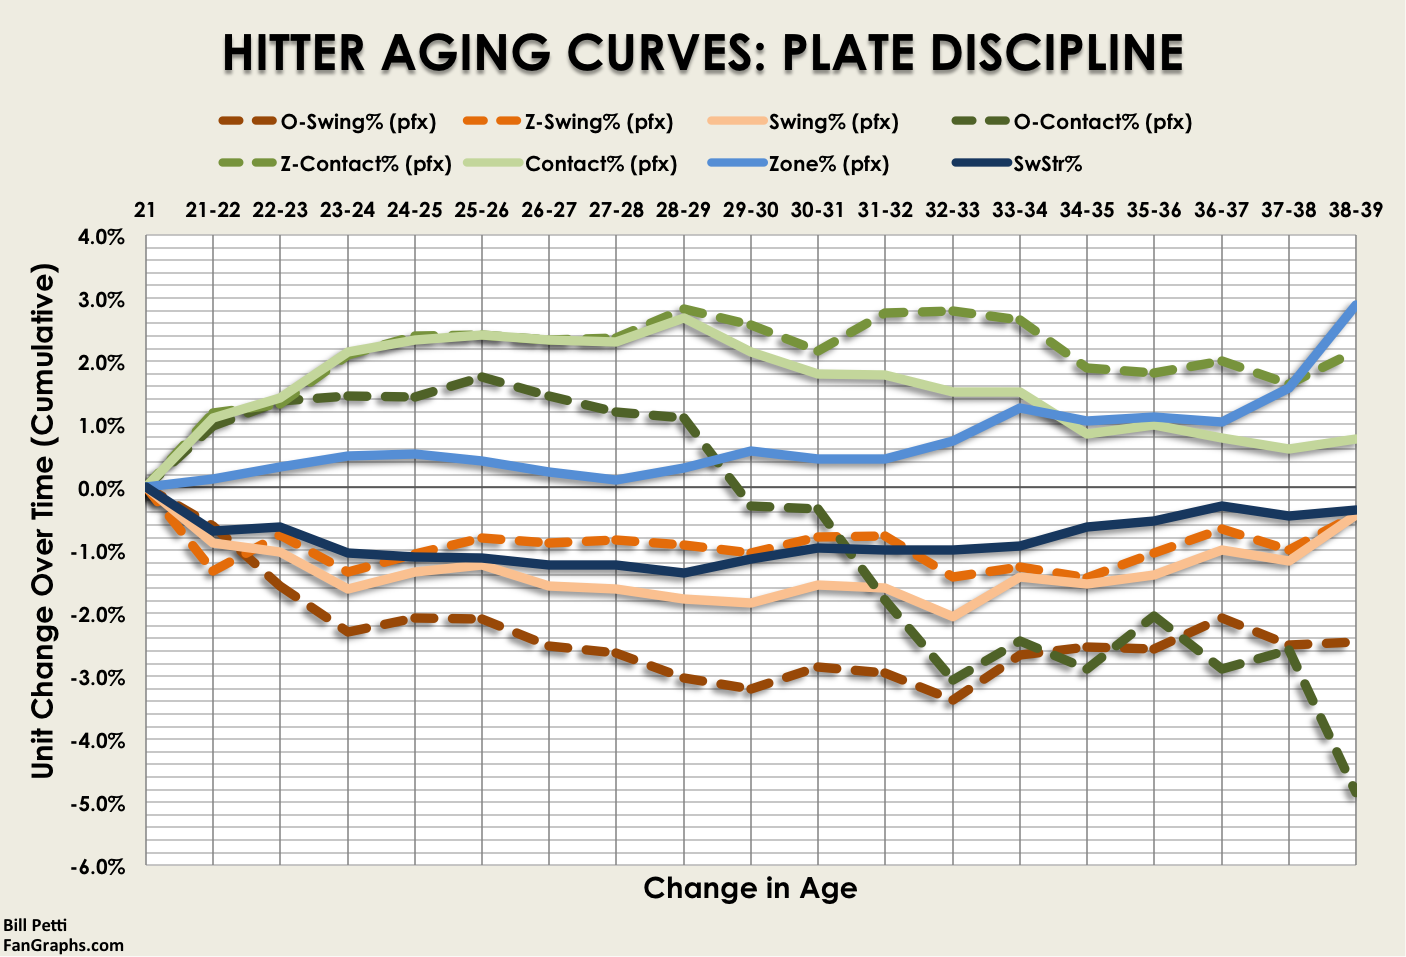 AgingCurves_Hitters_Discipline_All (1)